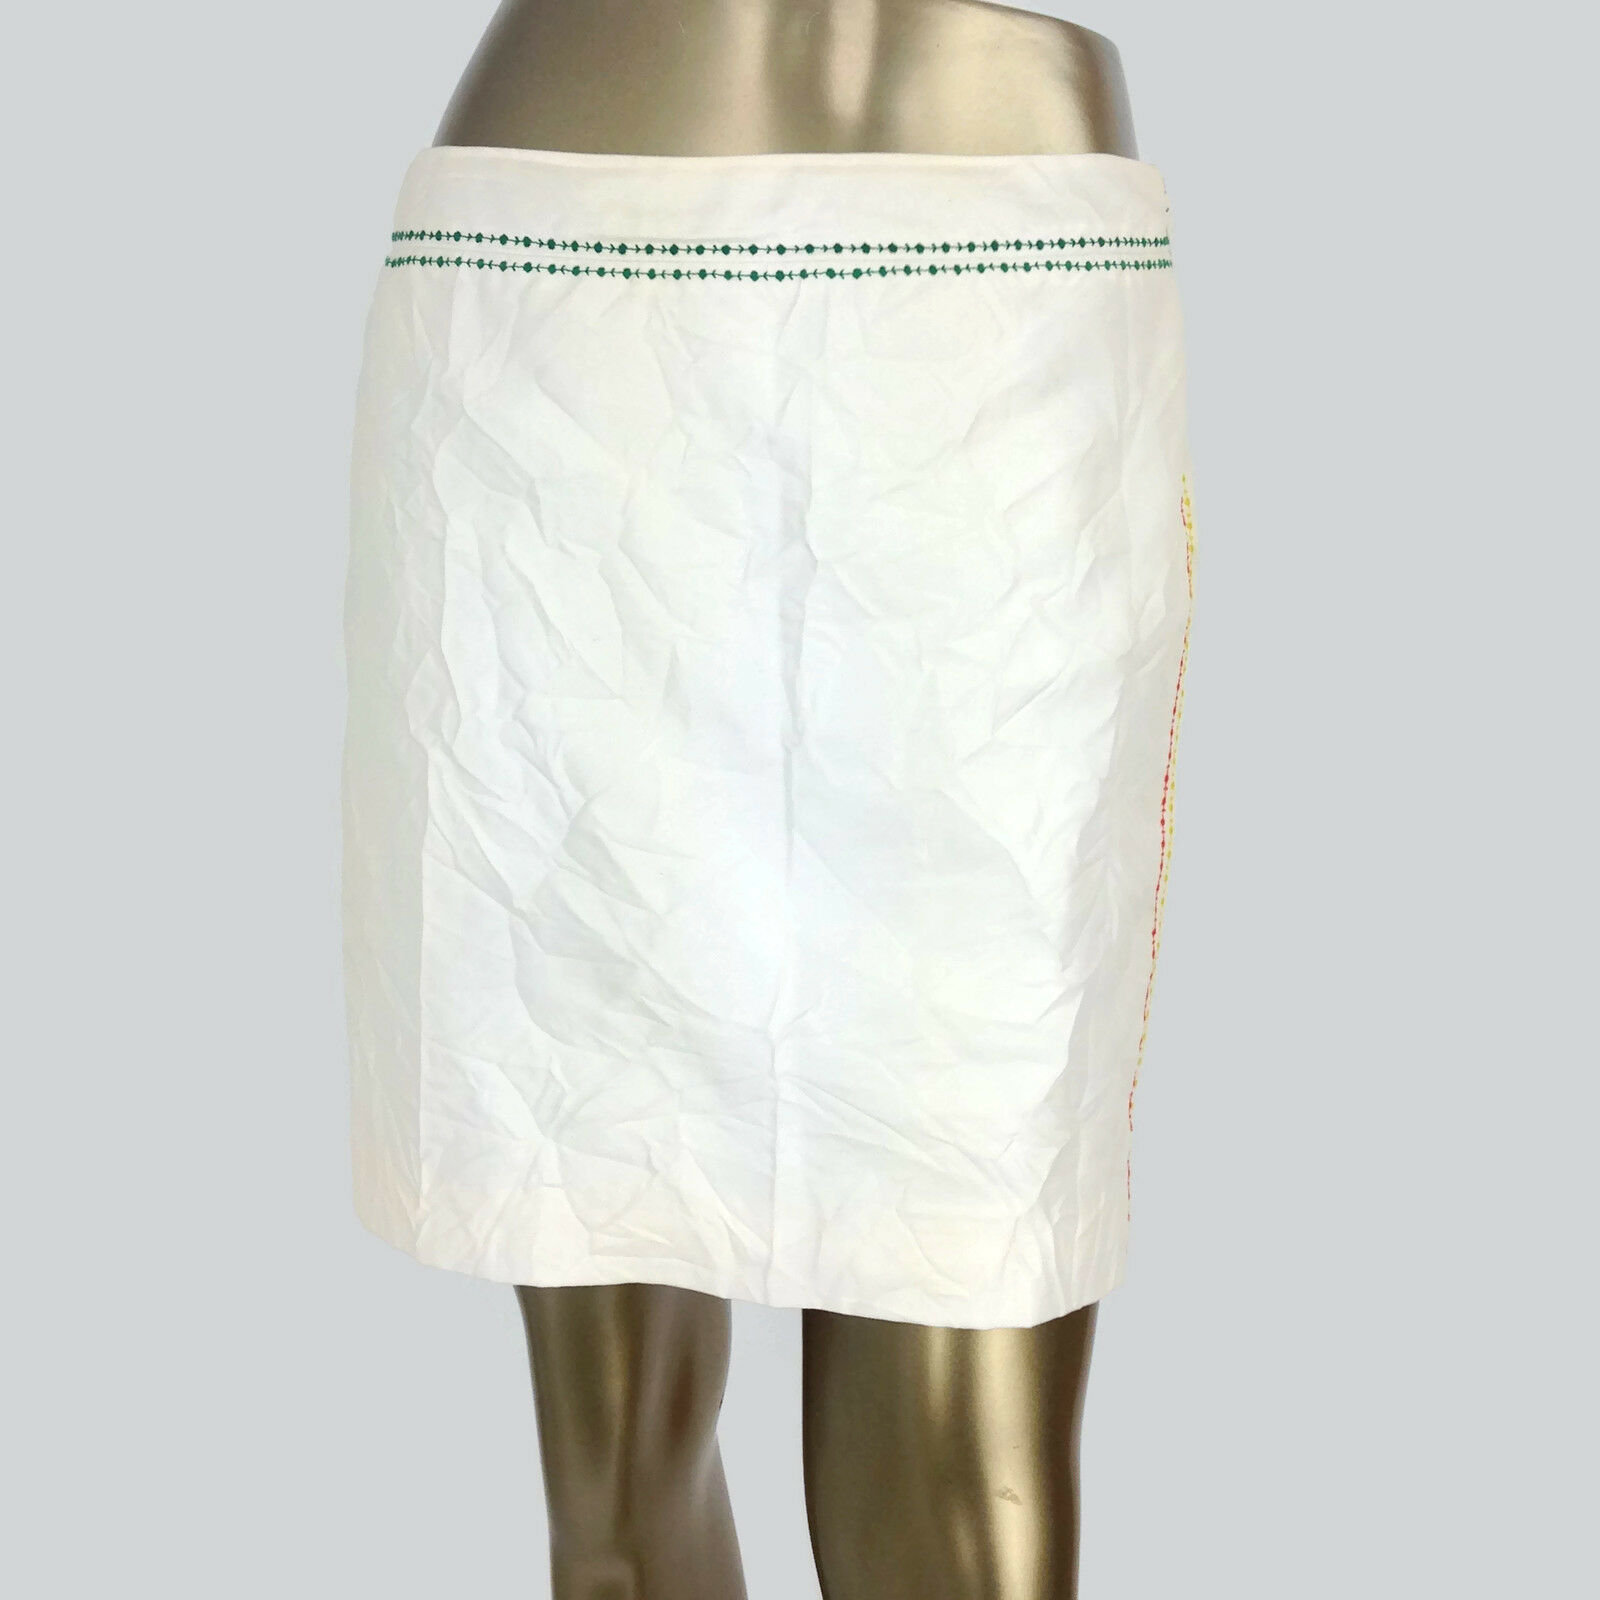 Primary image for Gianni Versace Made In Italy Women's Ivory Wool Mini Skirt Embroidered Trim 40